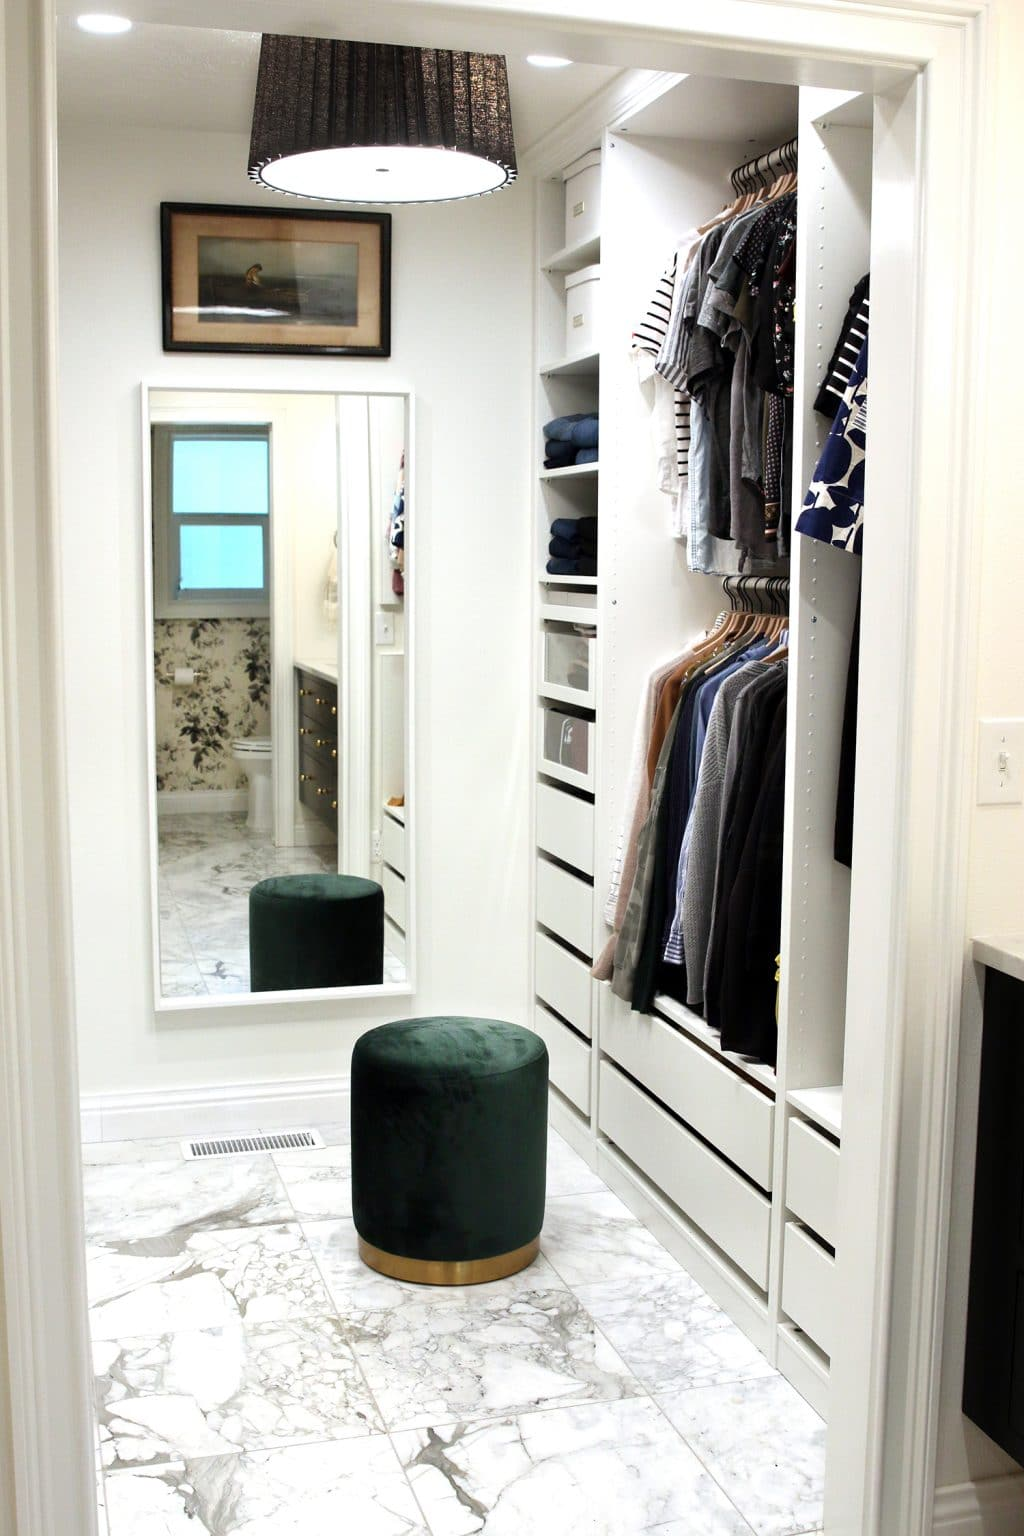 How To Use The Ikea Pax Wardrobe Planner Our Master Closet Mood Board Chris Loves Julia